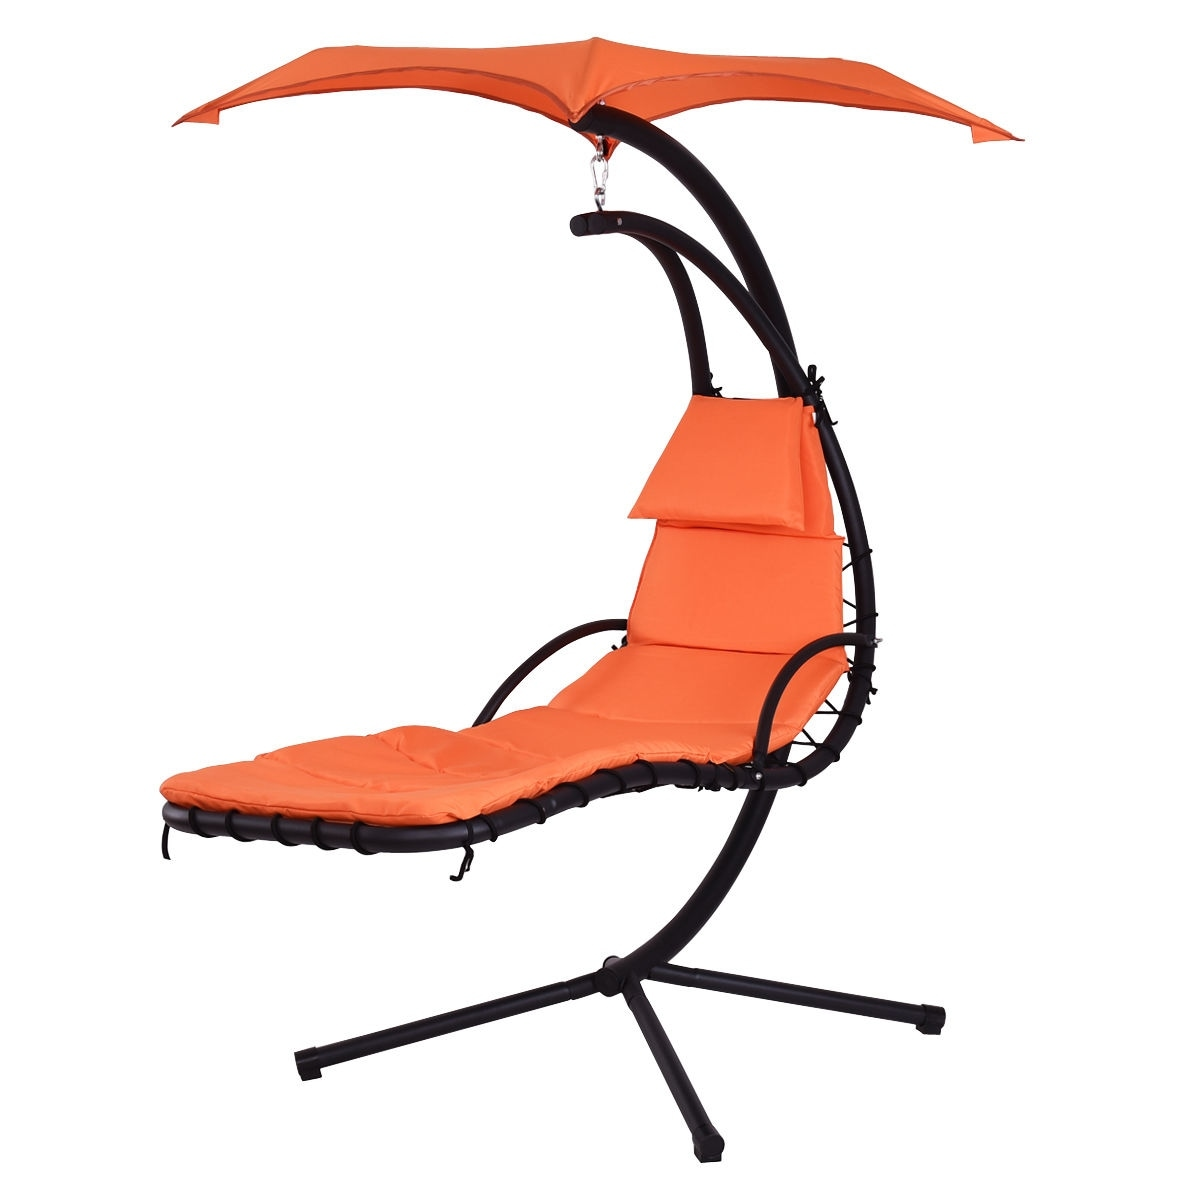 Shop Costway Hanging Chaise Lounge Chair Arc Stand Air Porch Swing Hammock  Chair Canopy Orange   Free Shipping Today   Overstock.com   15954937